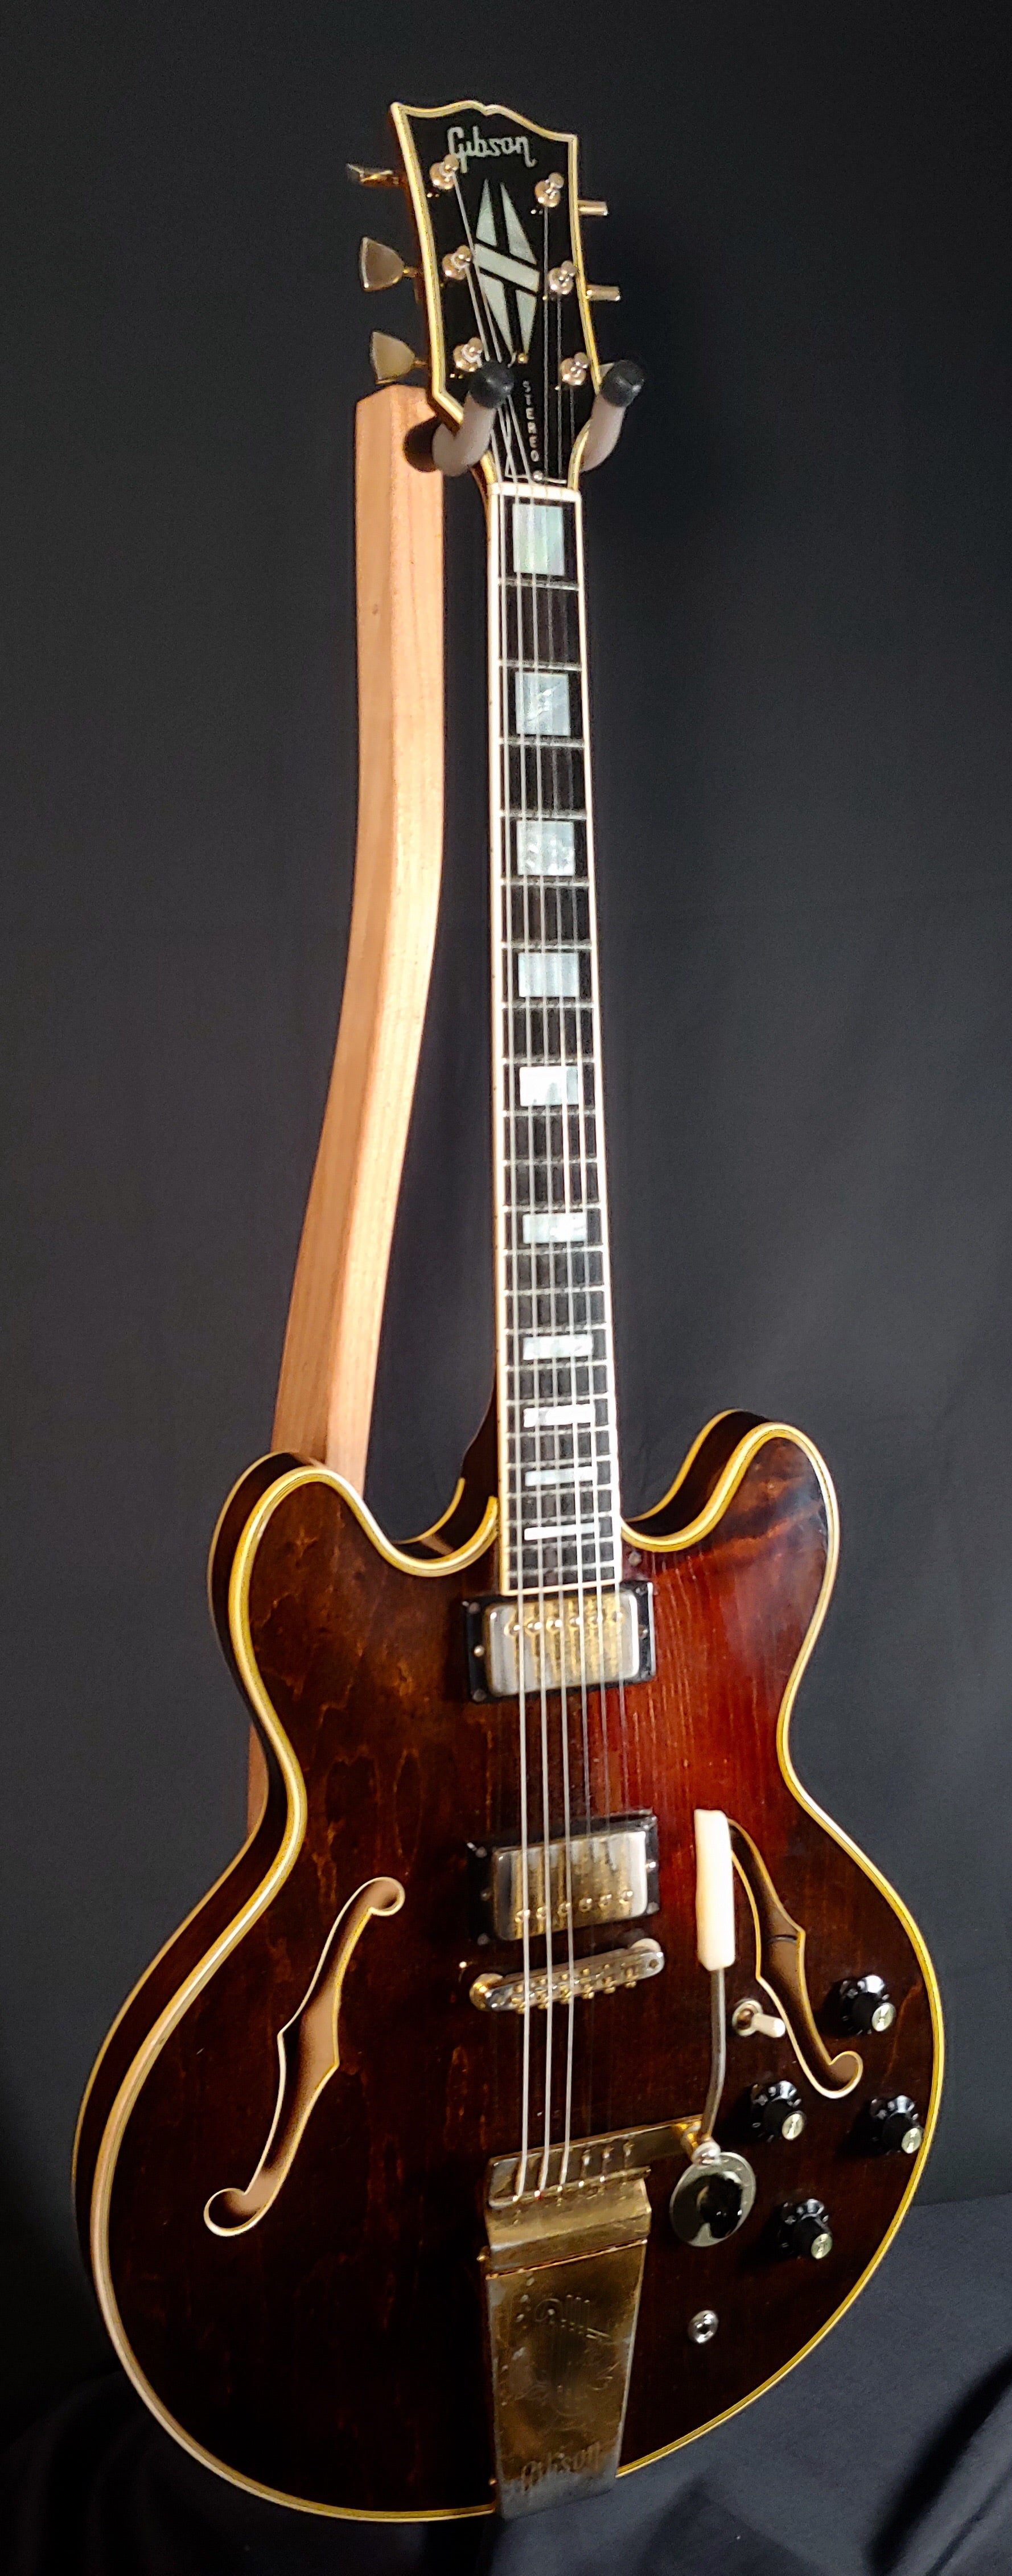 1975 Gibson ES 355 Stereo Beautiful Walnut Finish